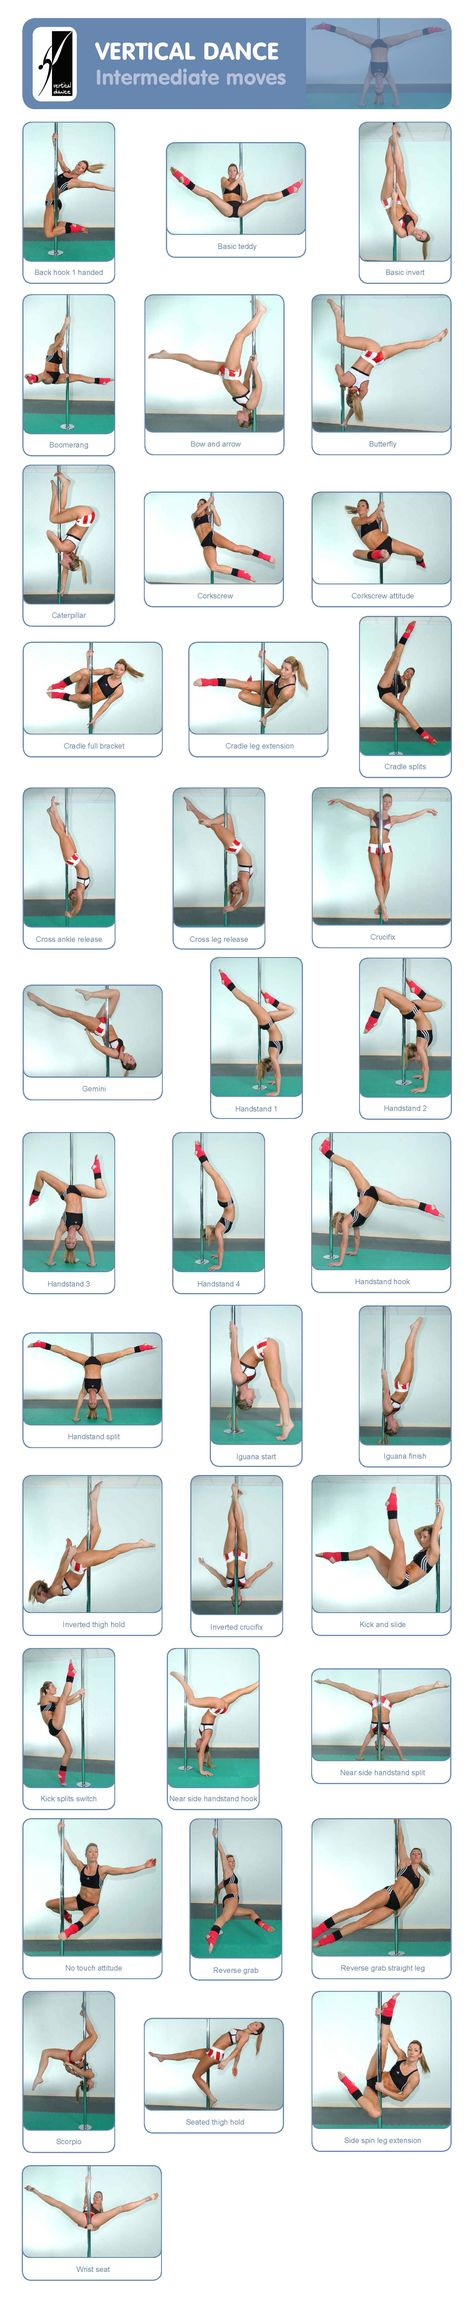 Intermediate pole tricks. Bit different from how I've been taught but can do many of these moves:)